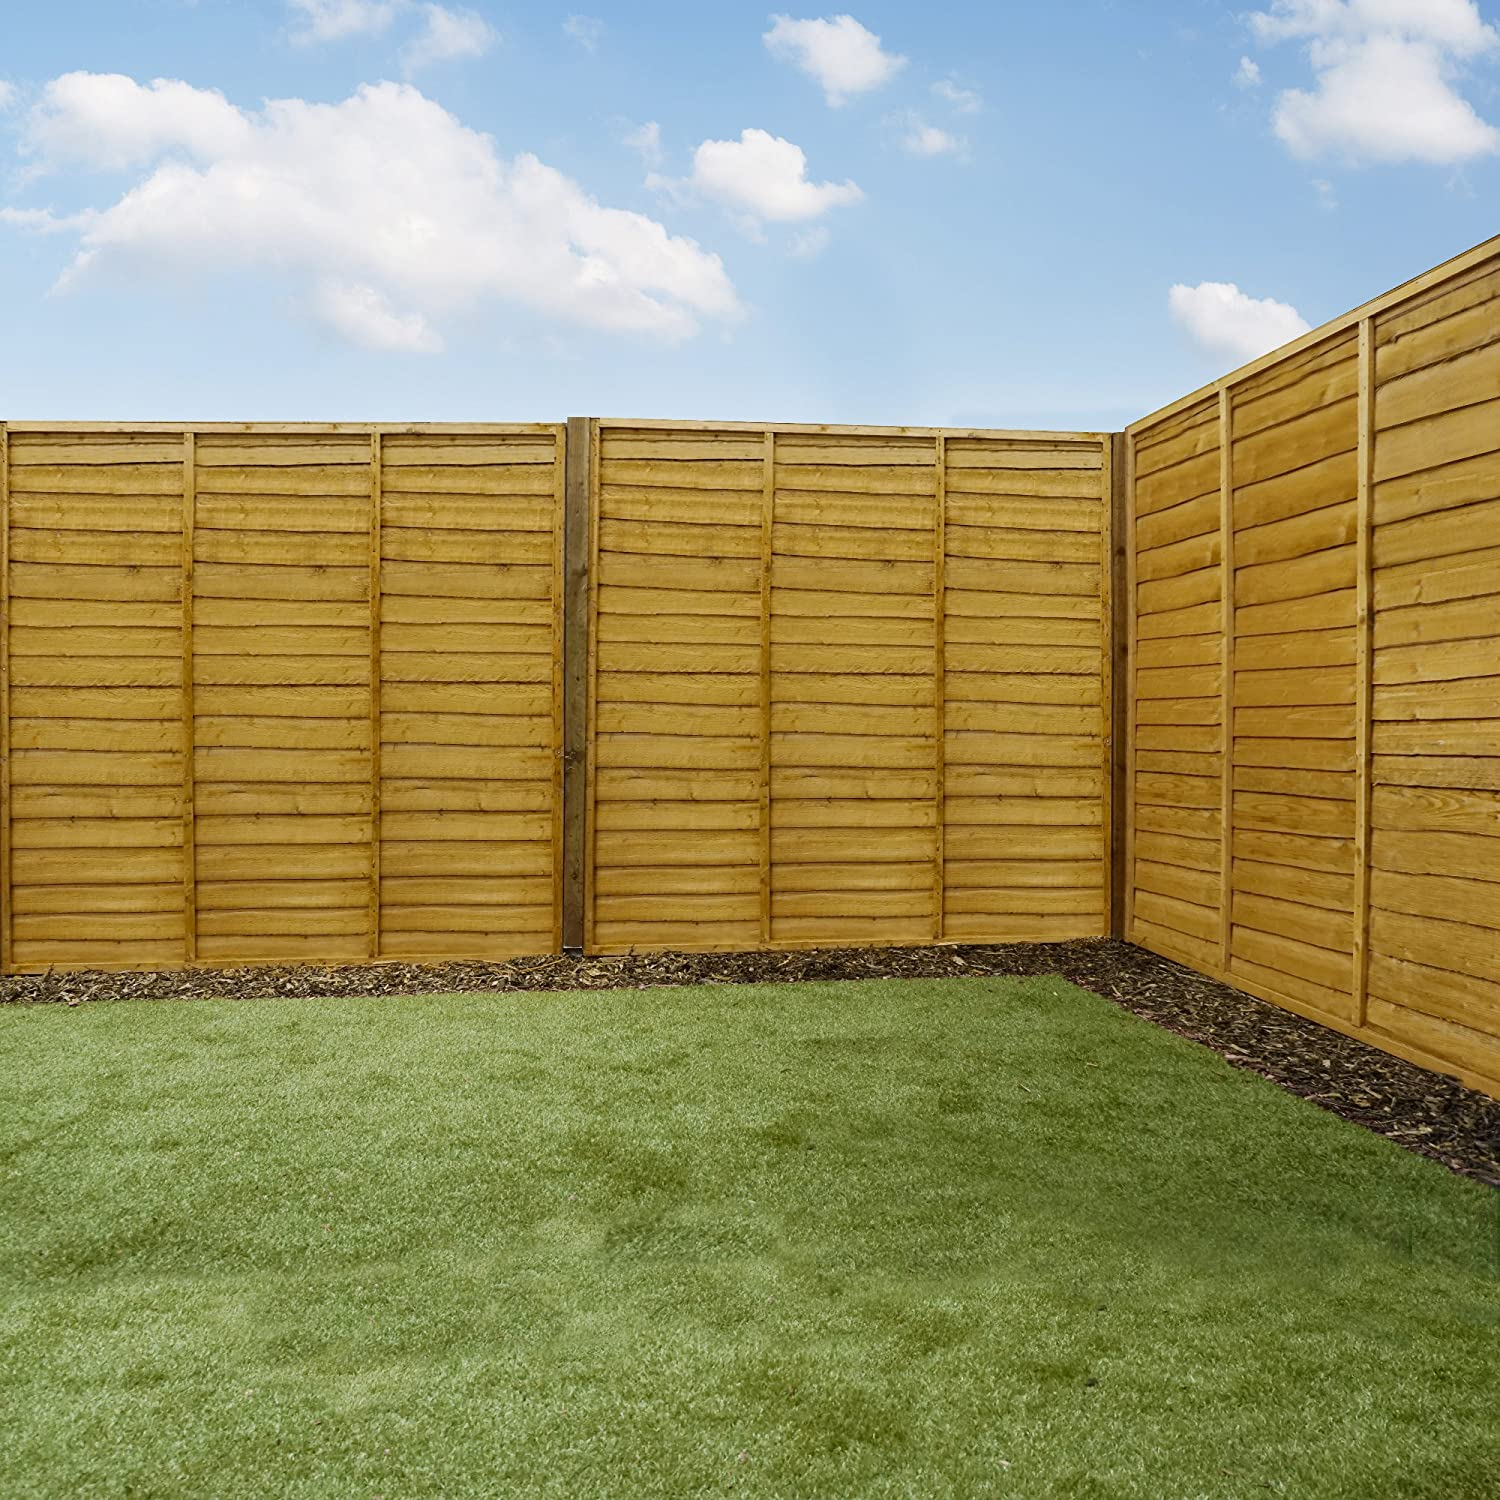 6ft horizontal lap wooden fence panels amazoncouk garden u0026 outdoors